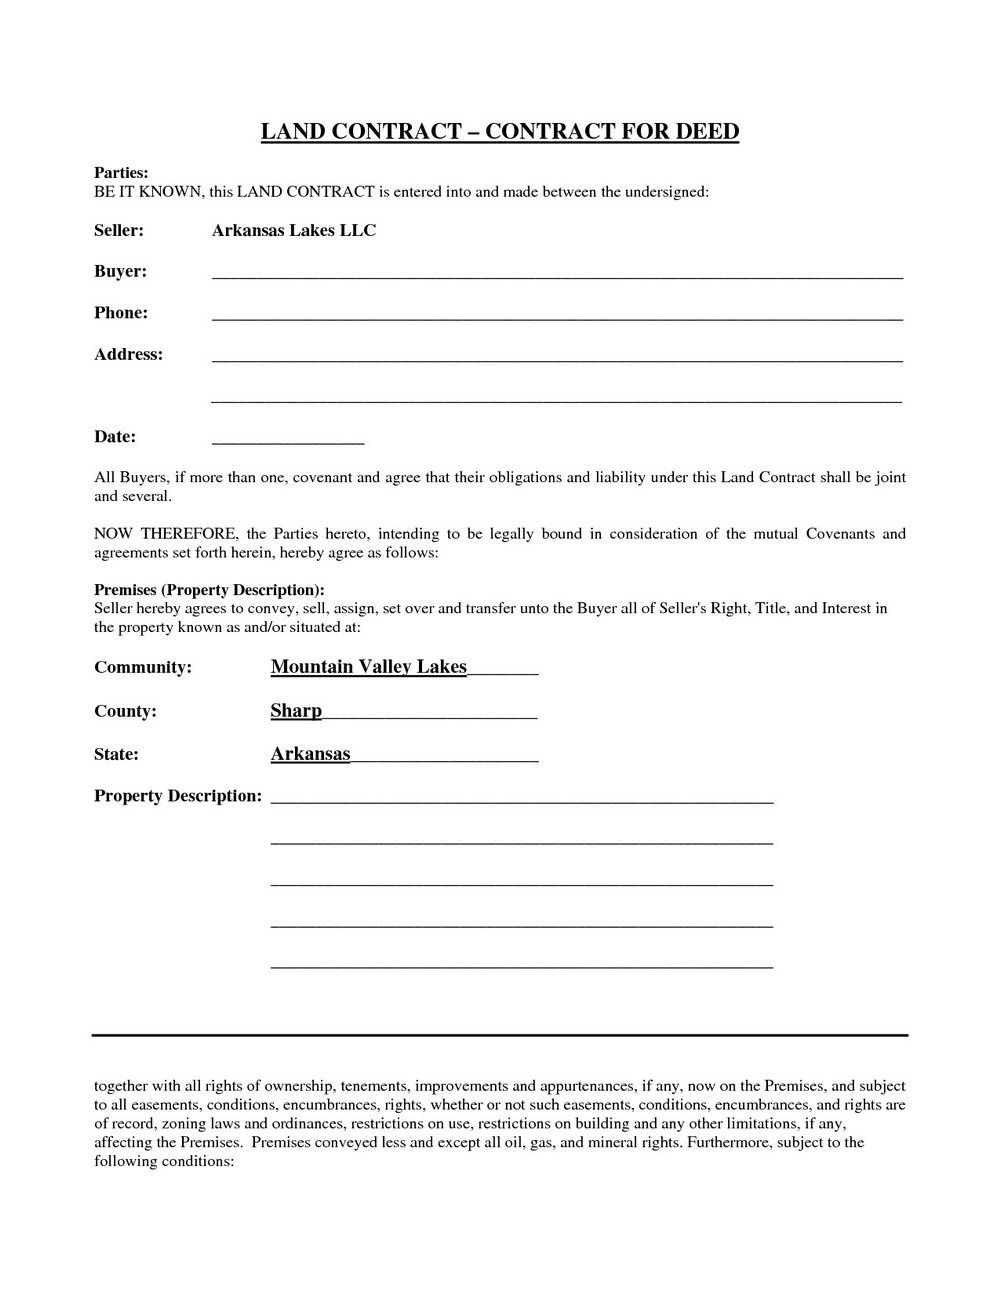 Blank Land Contract Form Michigan Free